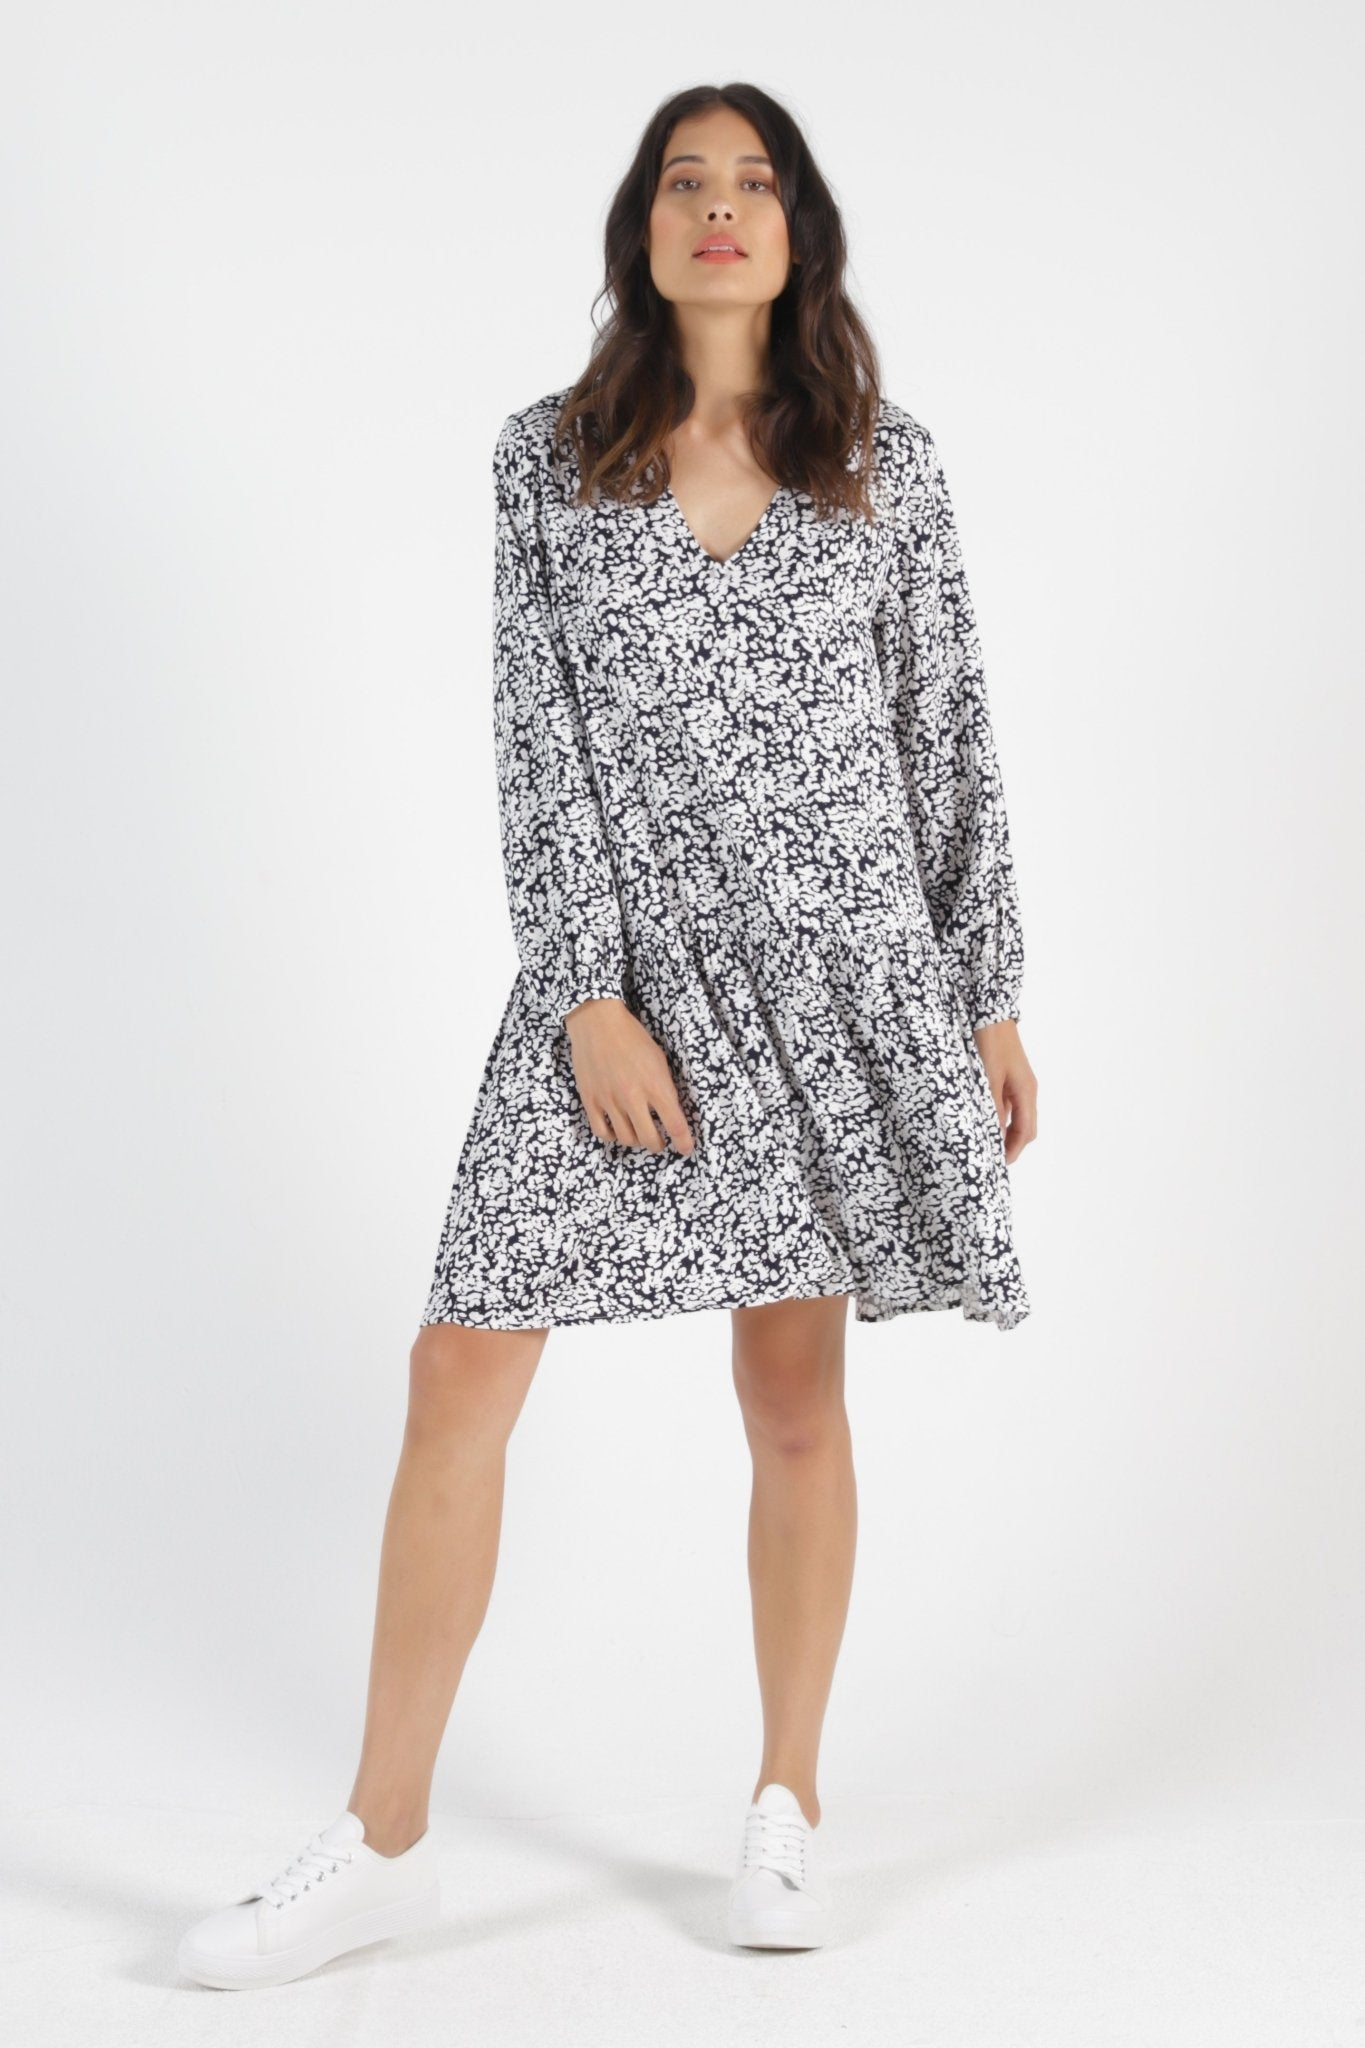 Betty Basics Rory Midi Dress in Ink Blot - Hey Sara